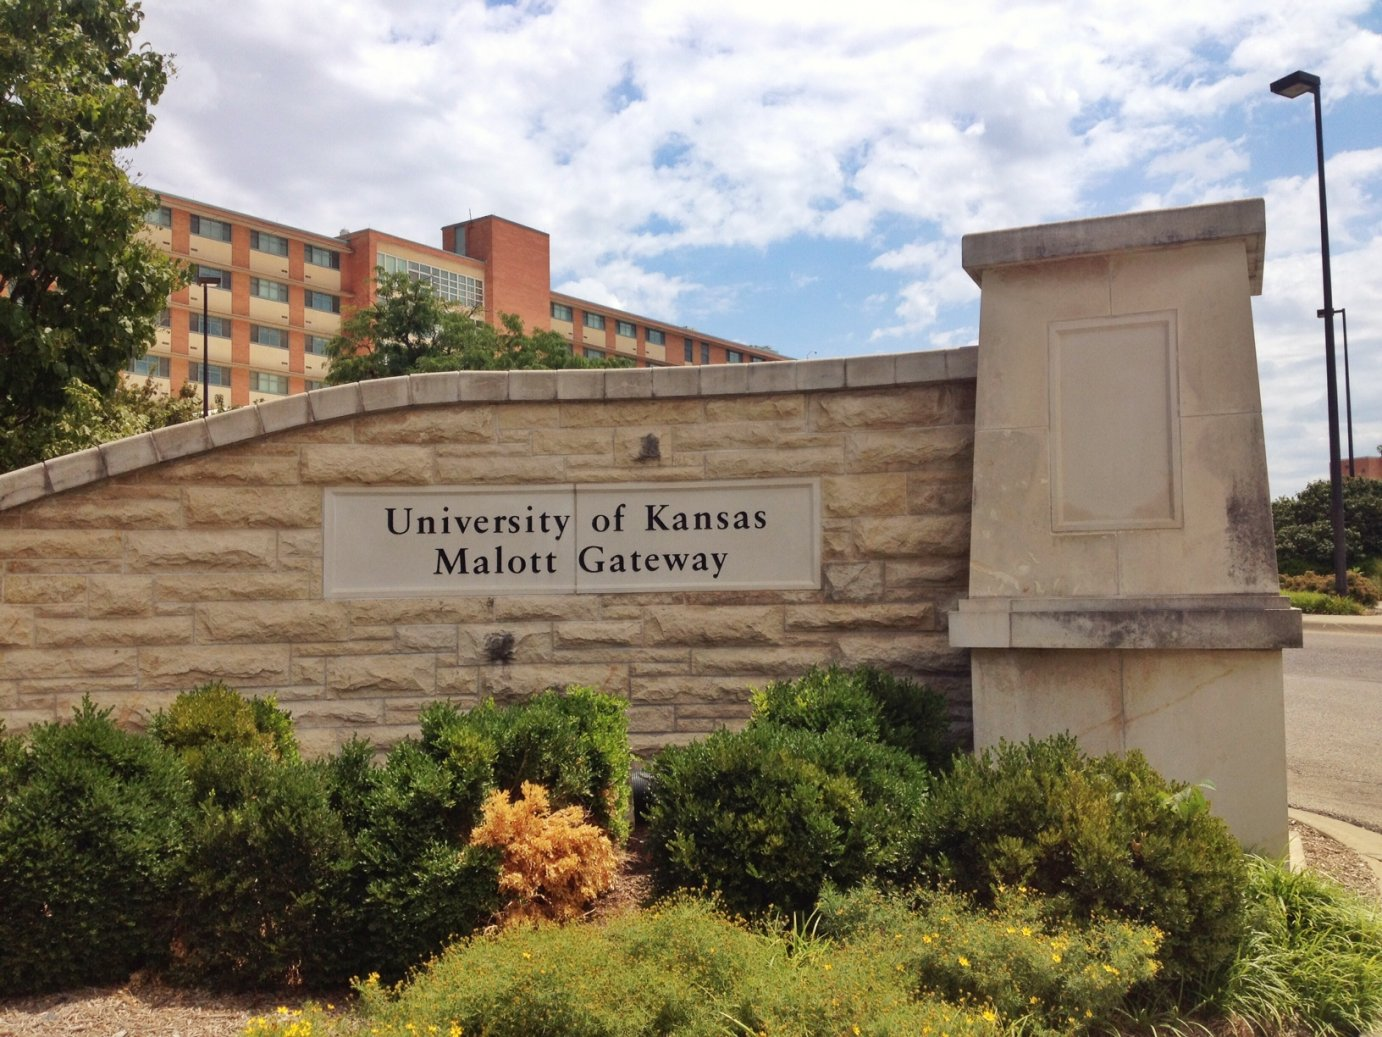 KU students will finish the fall semester before Thanksgiving this year. They'll start the spring semester later and go straight through without a spring break. (Photo by J. Schafer)